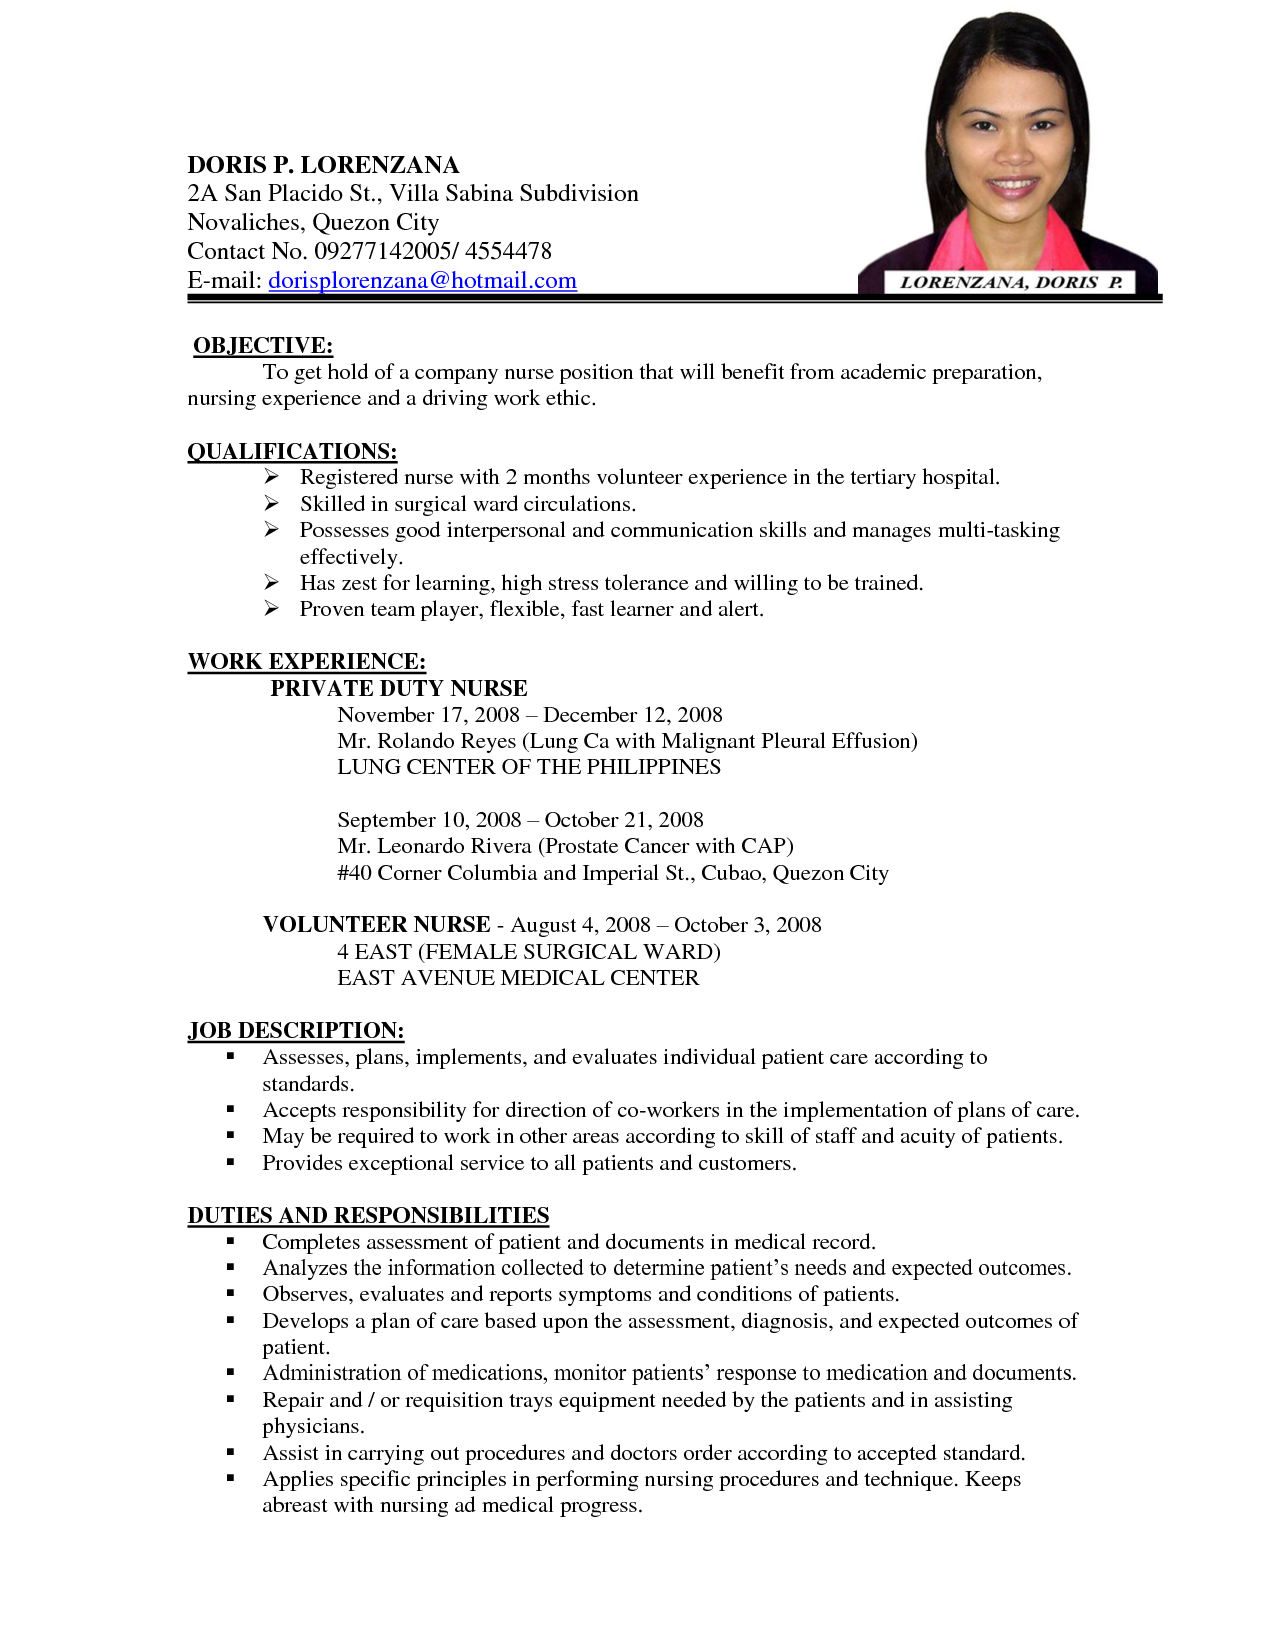 nursing curriculum vitae examples google search nursing